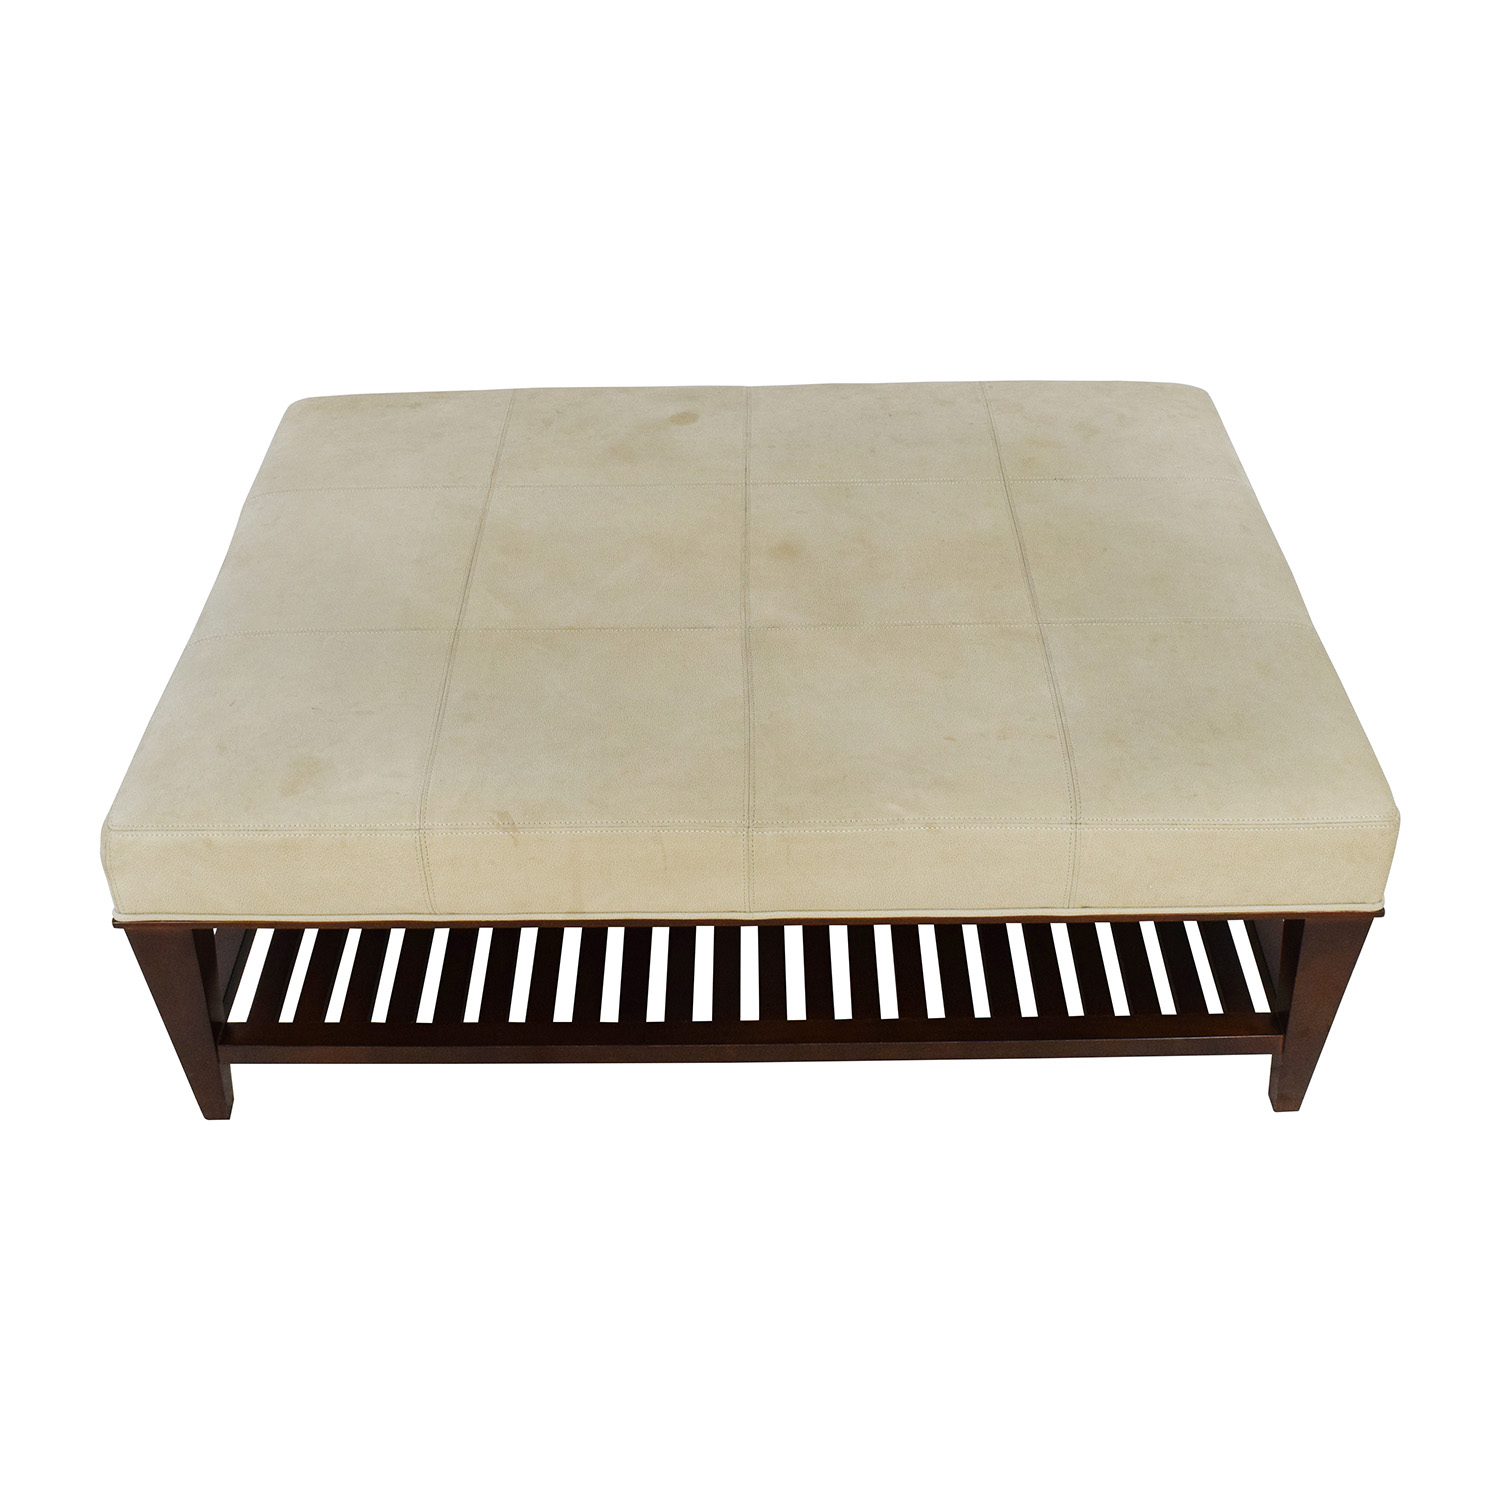 Baker Baker Walnut and Suede Ottoman second hand